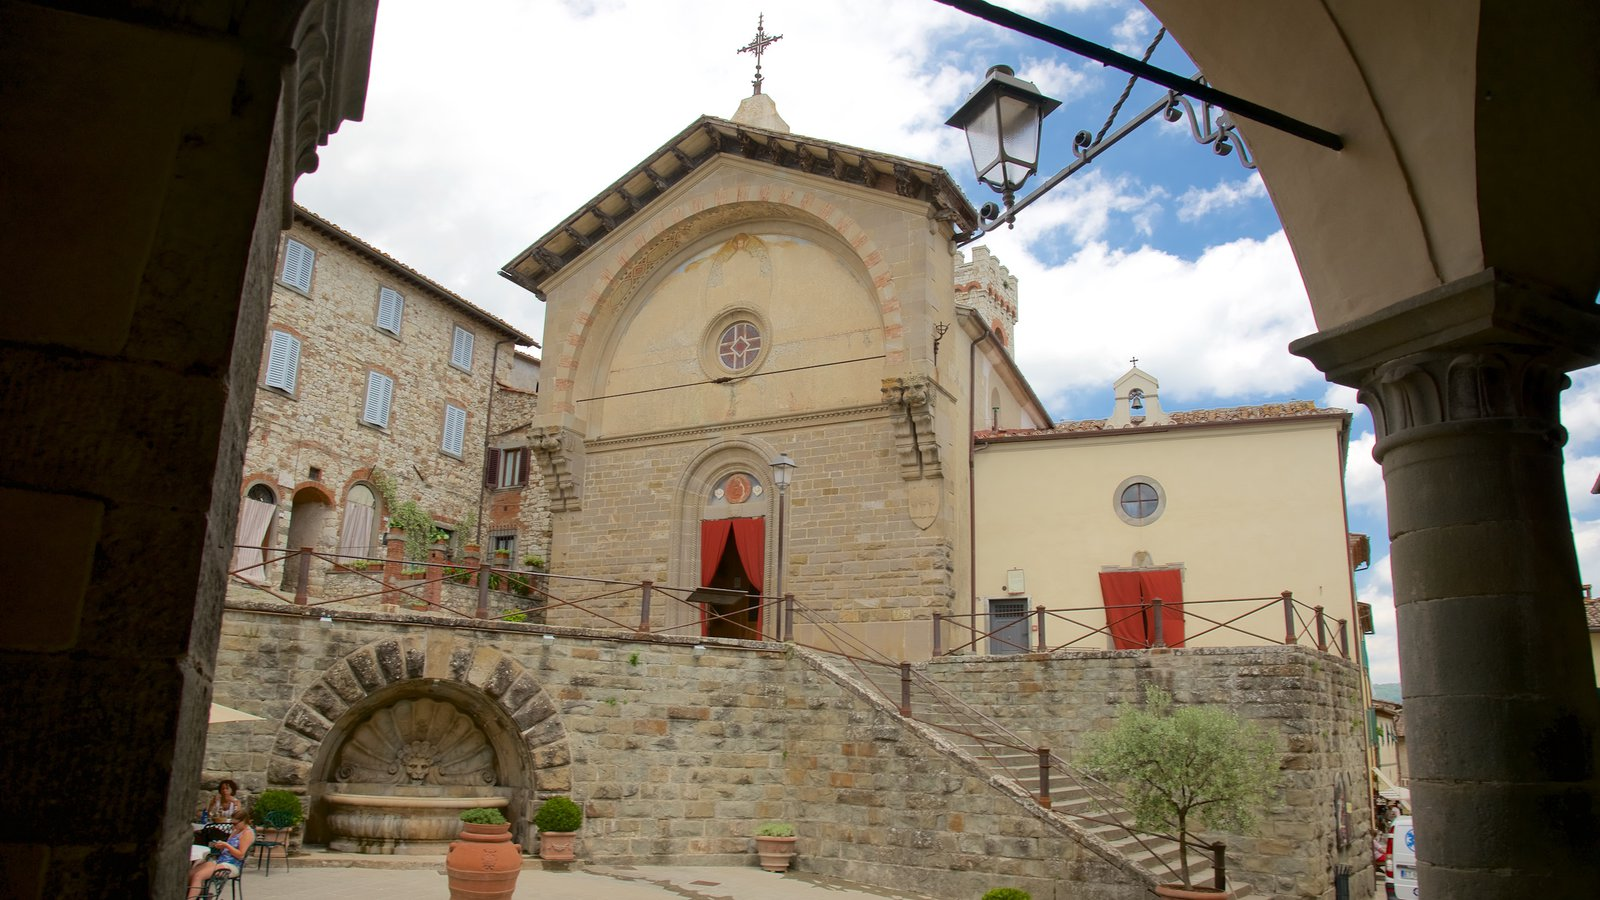 Radda in Chianti which includes heritage architecture, a small town or village and a church or cathedral